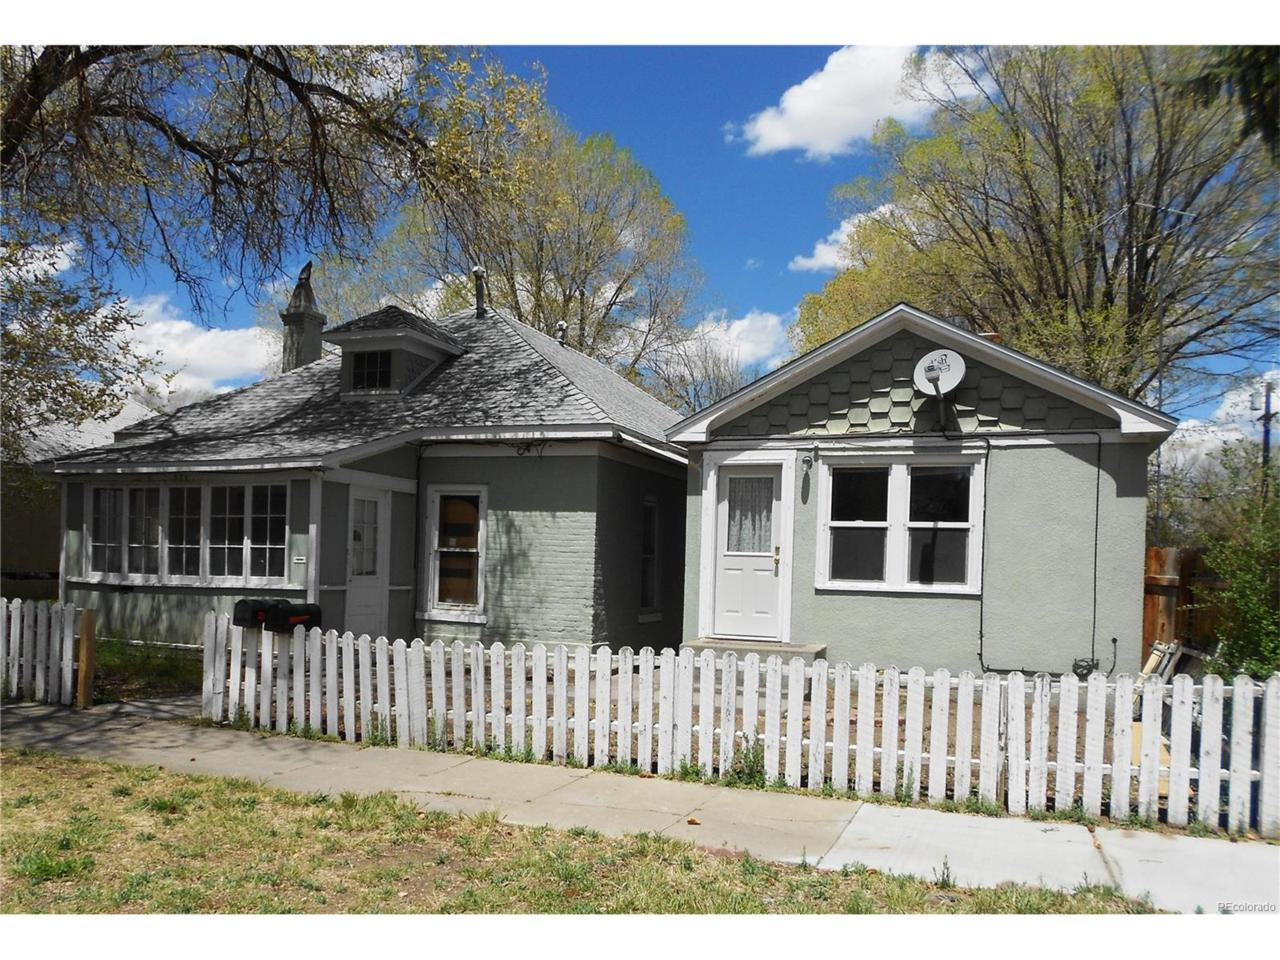 521 and 521 1/2 9th Street, Alamosa, CO 81101 (MLS #4015011) :: 8z Real Estate